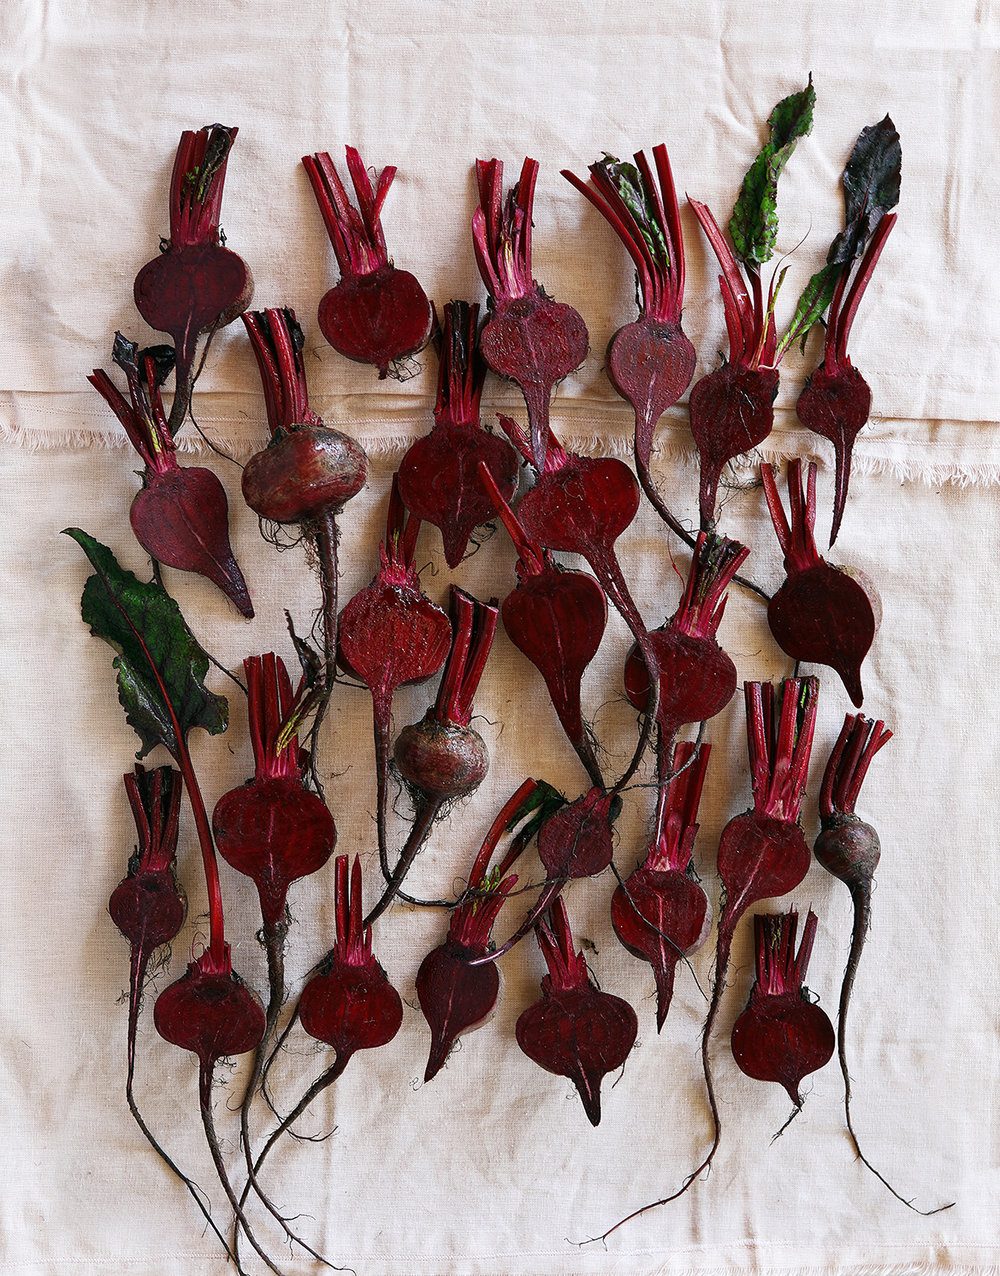 Beetroots_FINAL_003_Squarespace.jpg